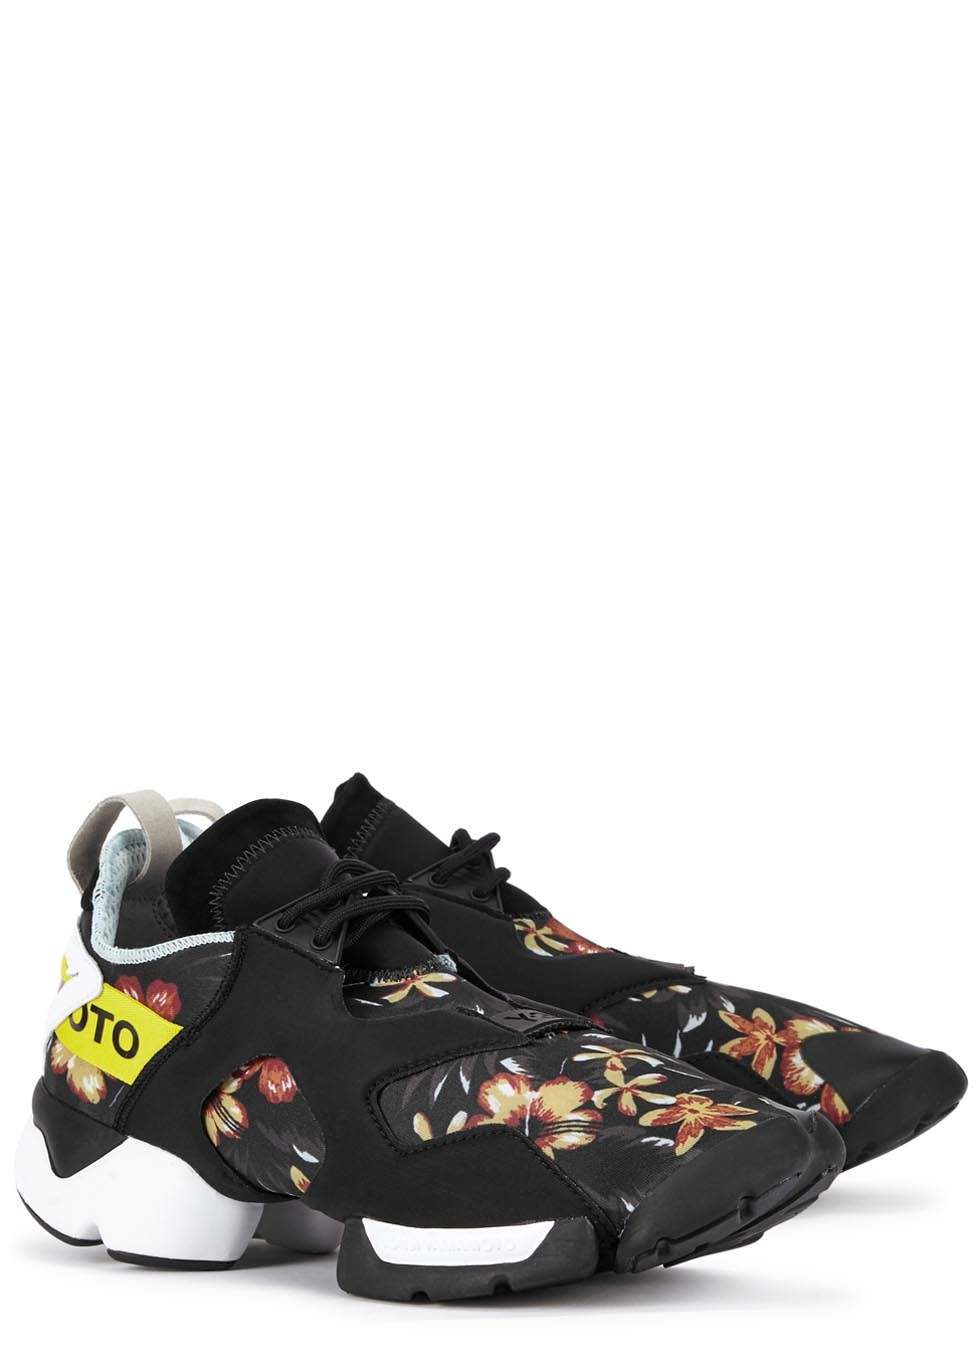 eb766286f0421 Y-3 Kohna Printed Neoprene Trainers for Men - Lyst